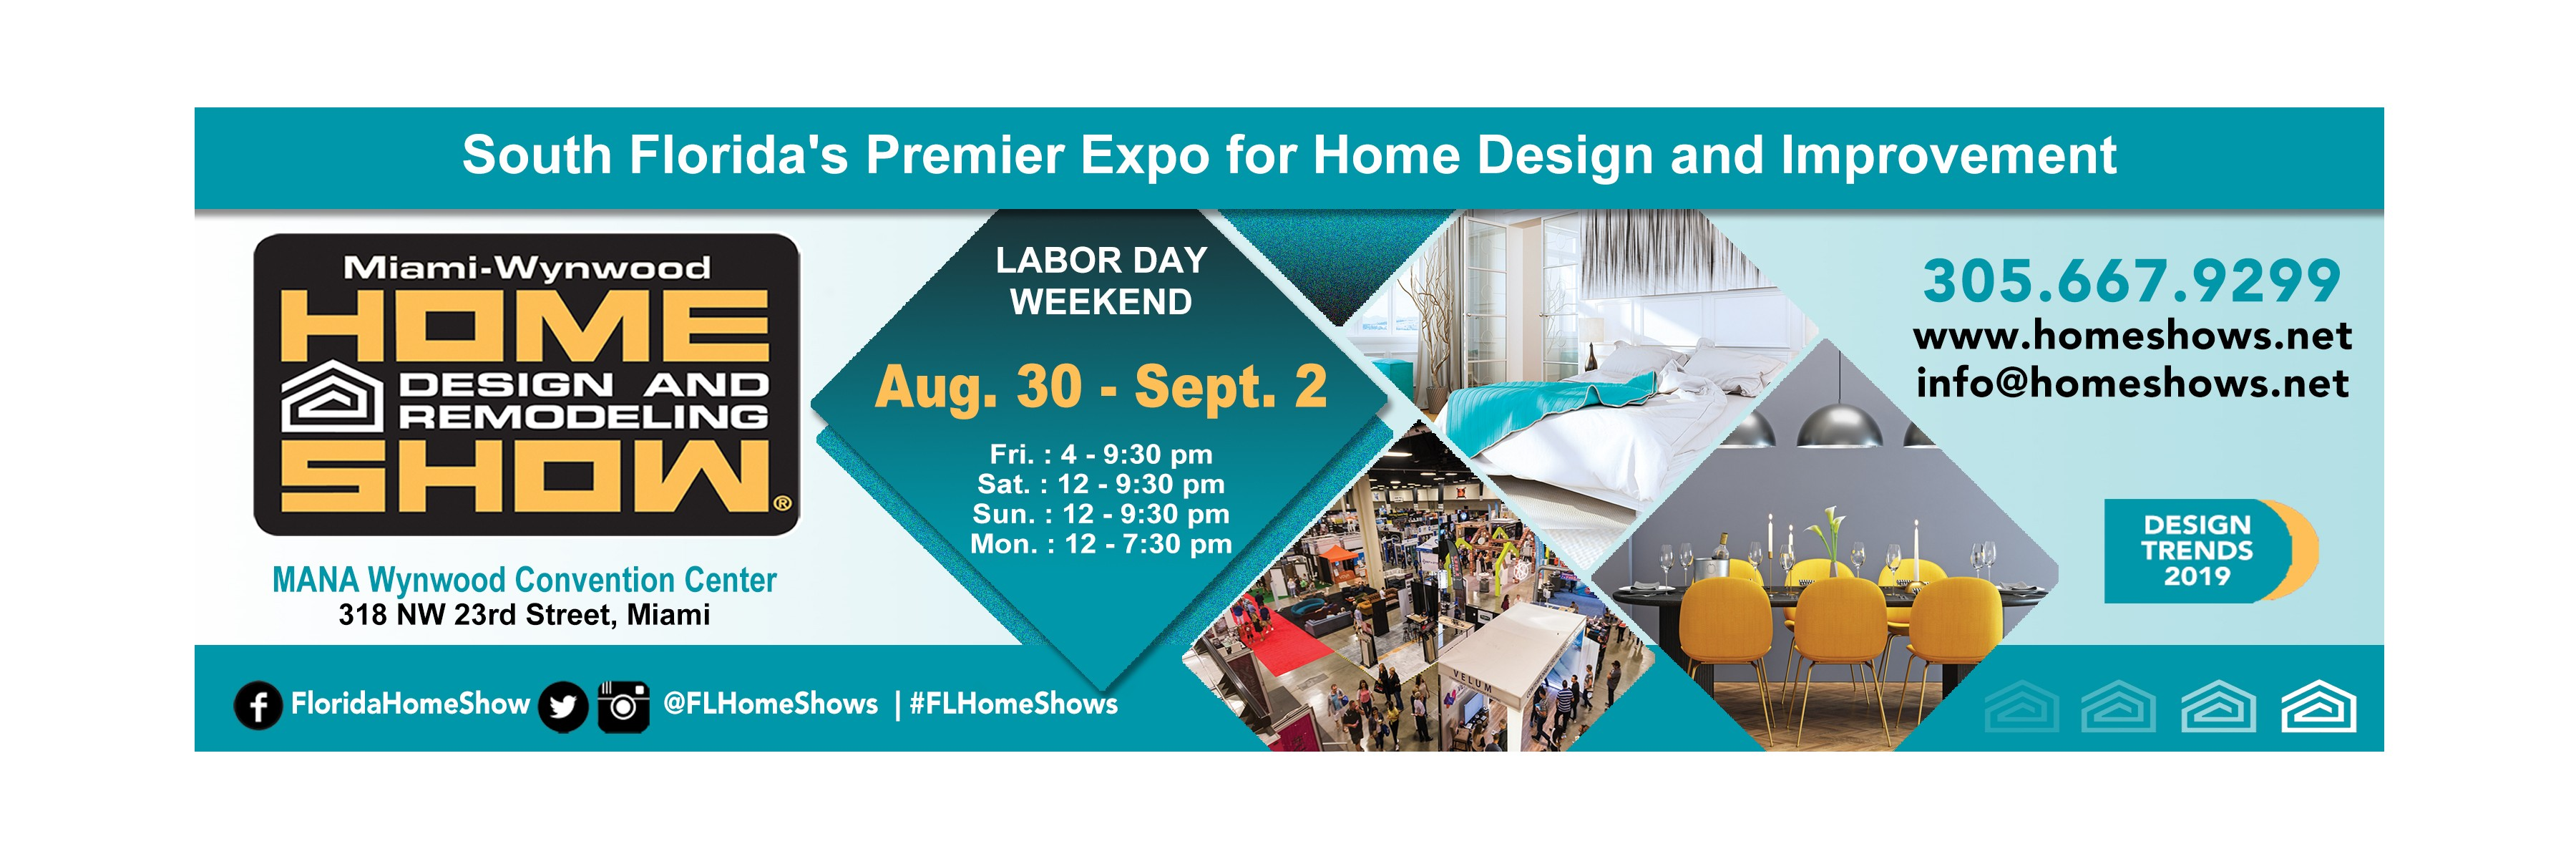 Home Design And Remodeling Show Aug 30 Sept 2 Miami Linkedin